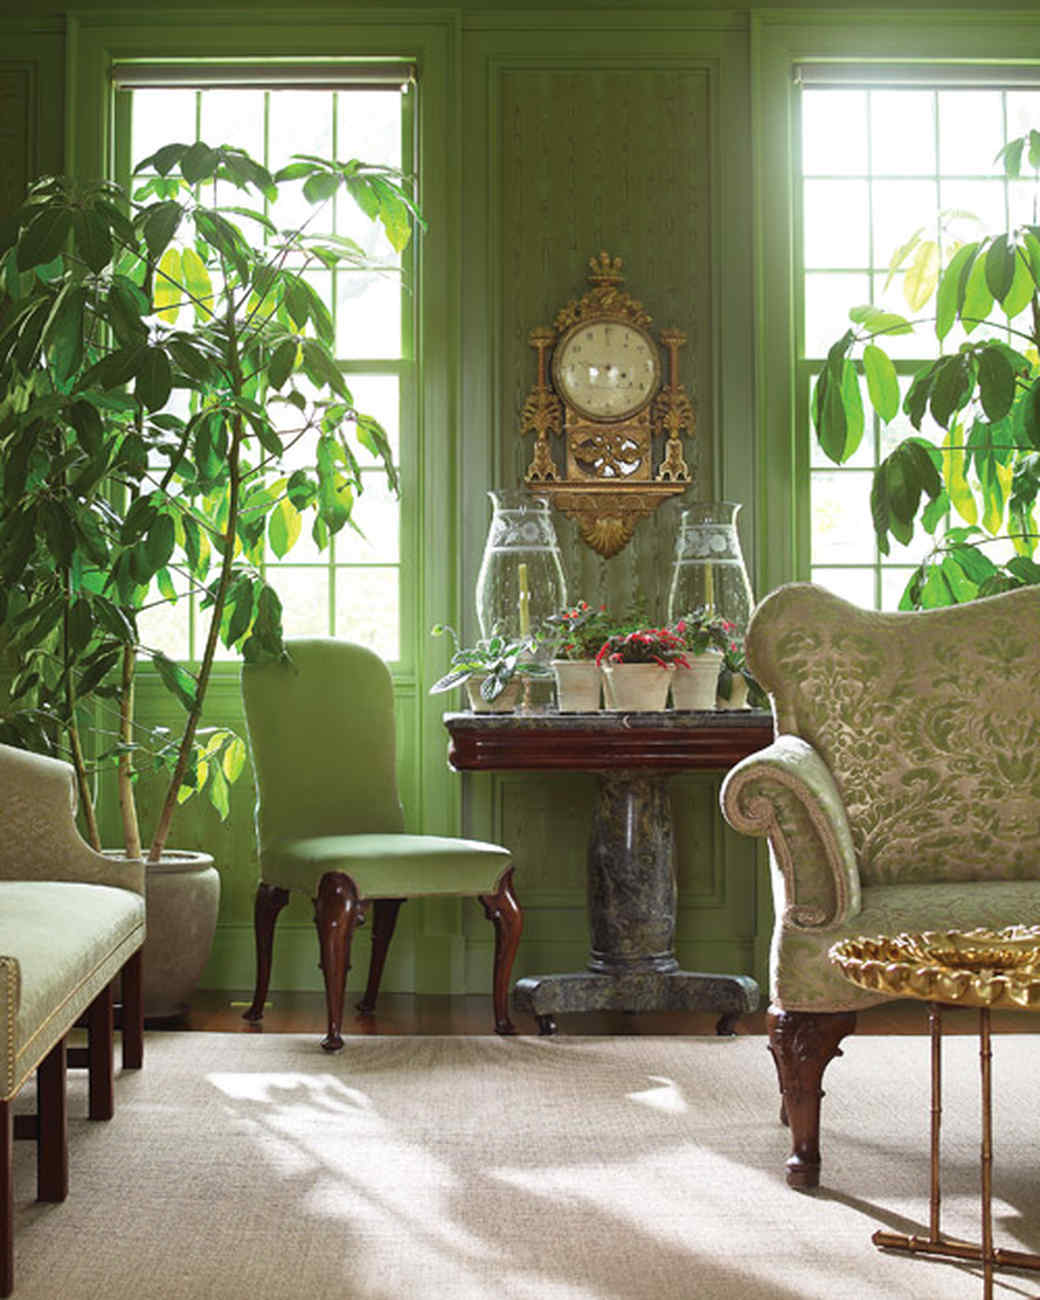 Decorating With Green Marthas Home Decorating With Houseplants Martha Stewart